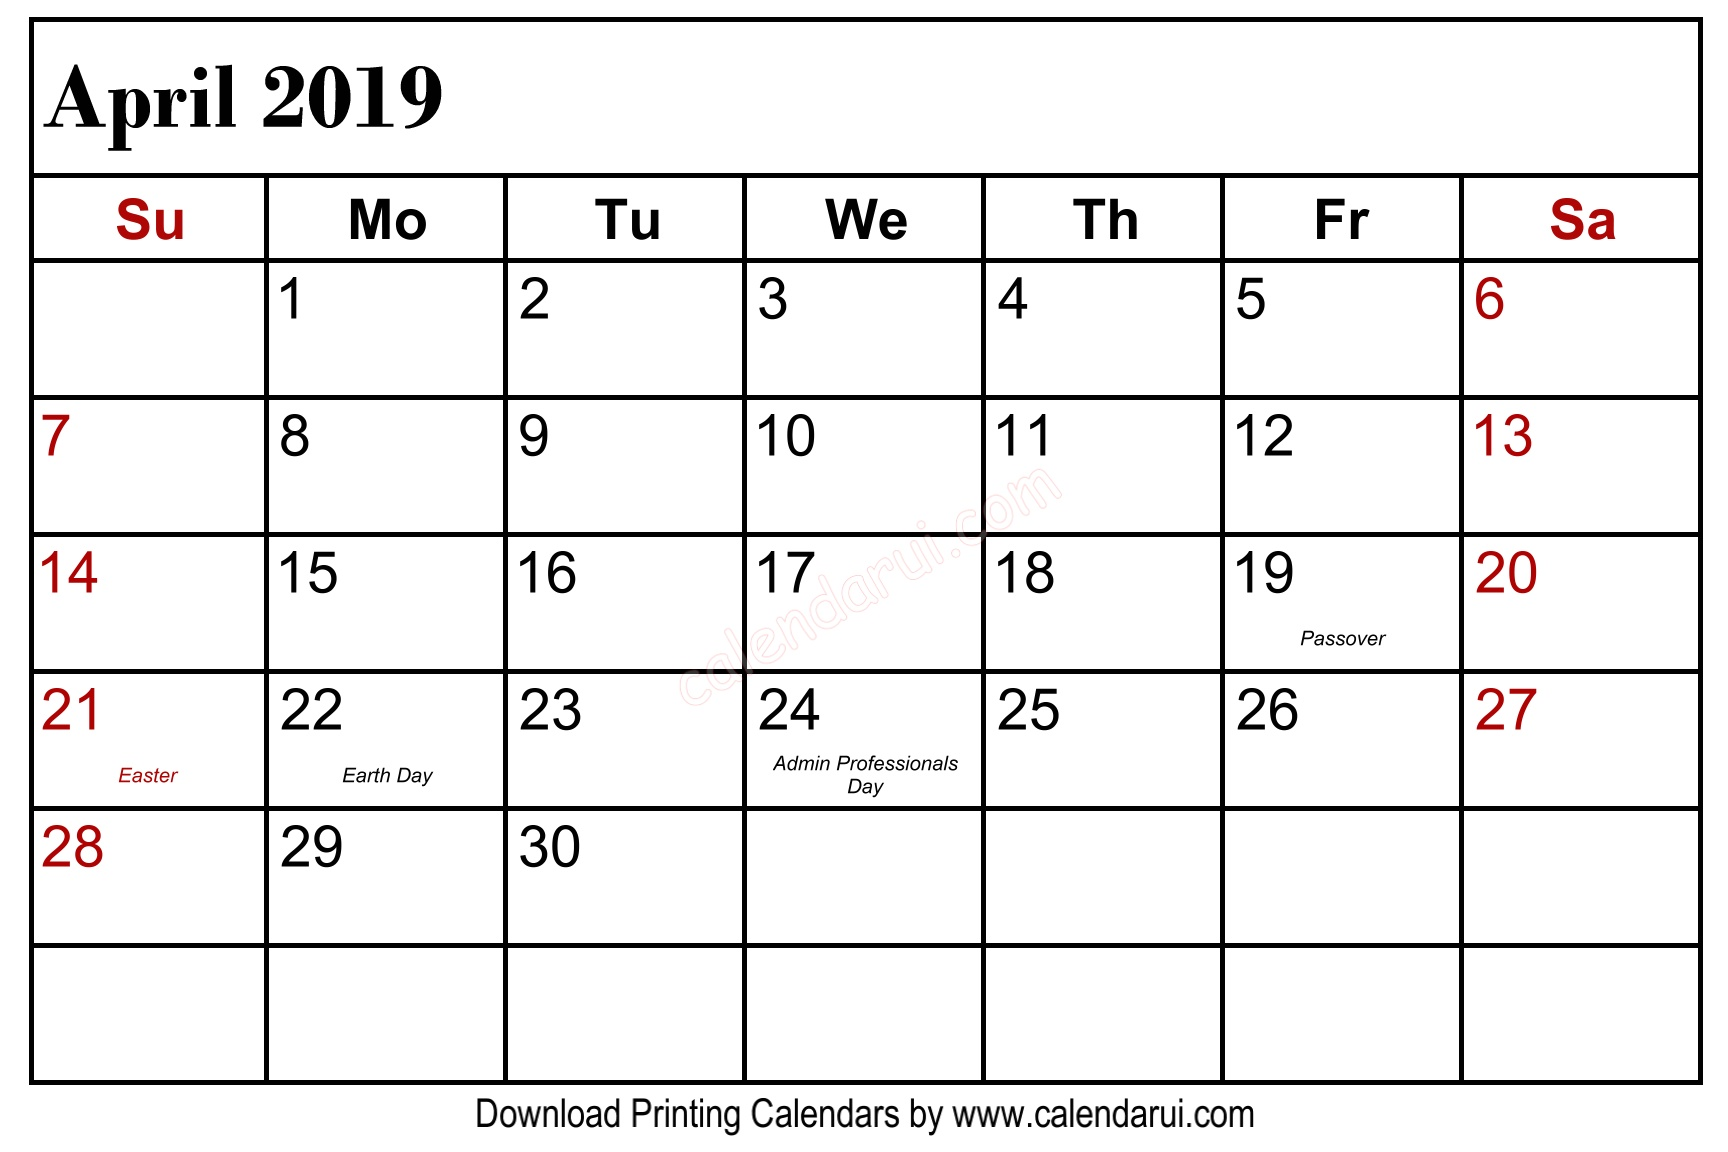 April 2019 Calendar Holidays USA Public Holidays